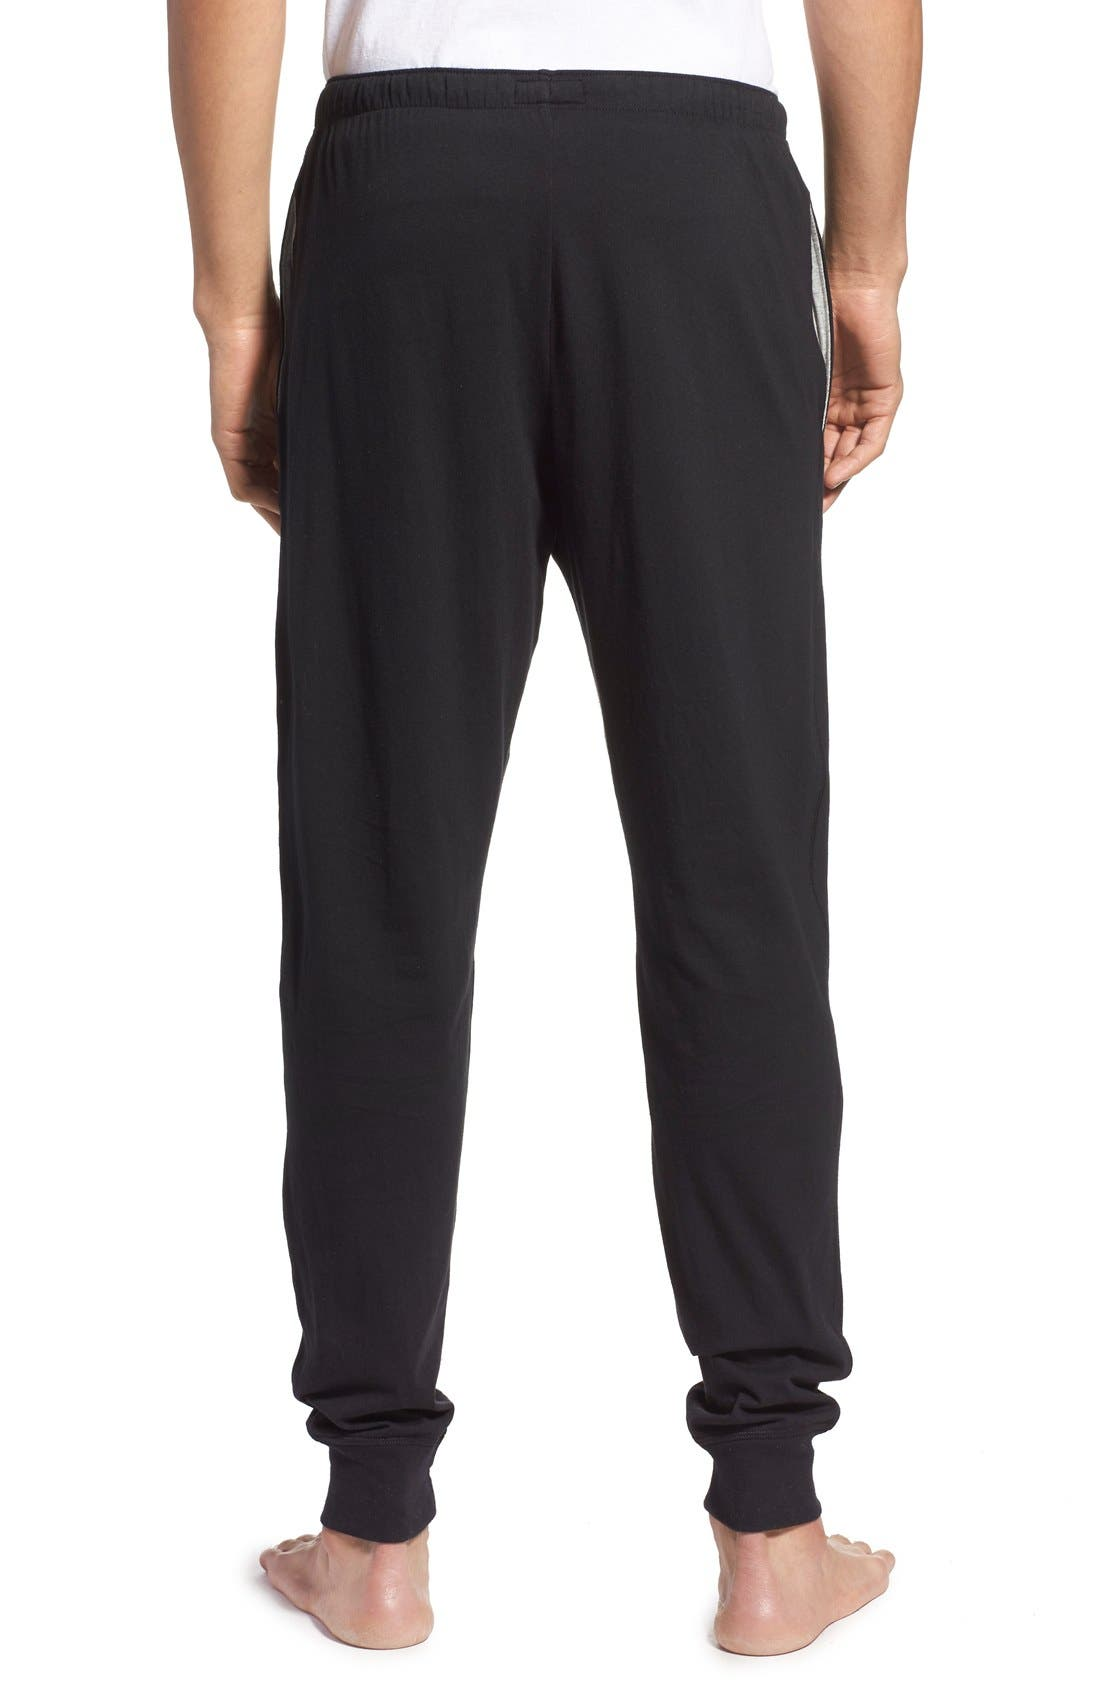 Alternate Image 2  - Polo Ralph Lauren Relaxed Fit Cotton Knit Lounge Jogger Pants